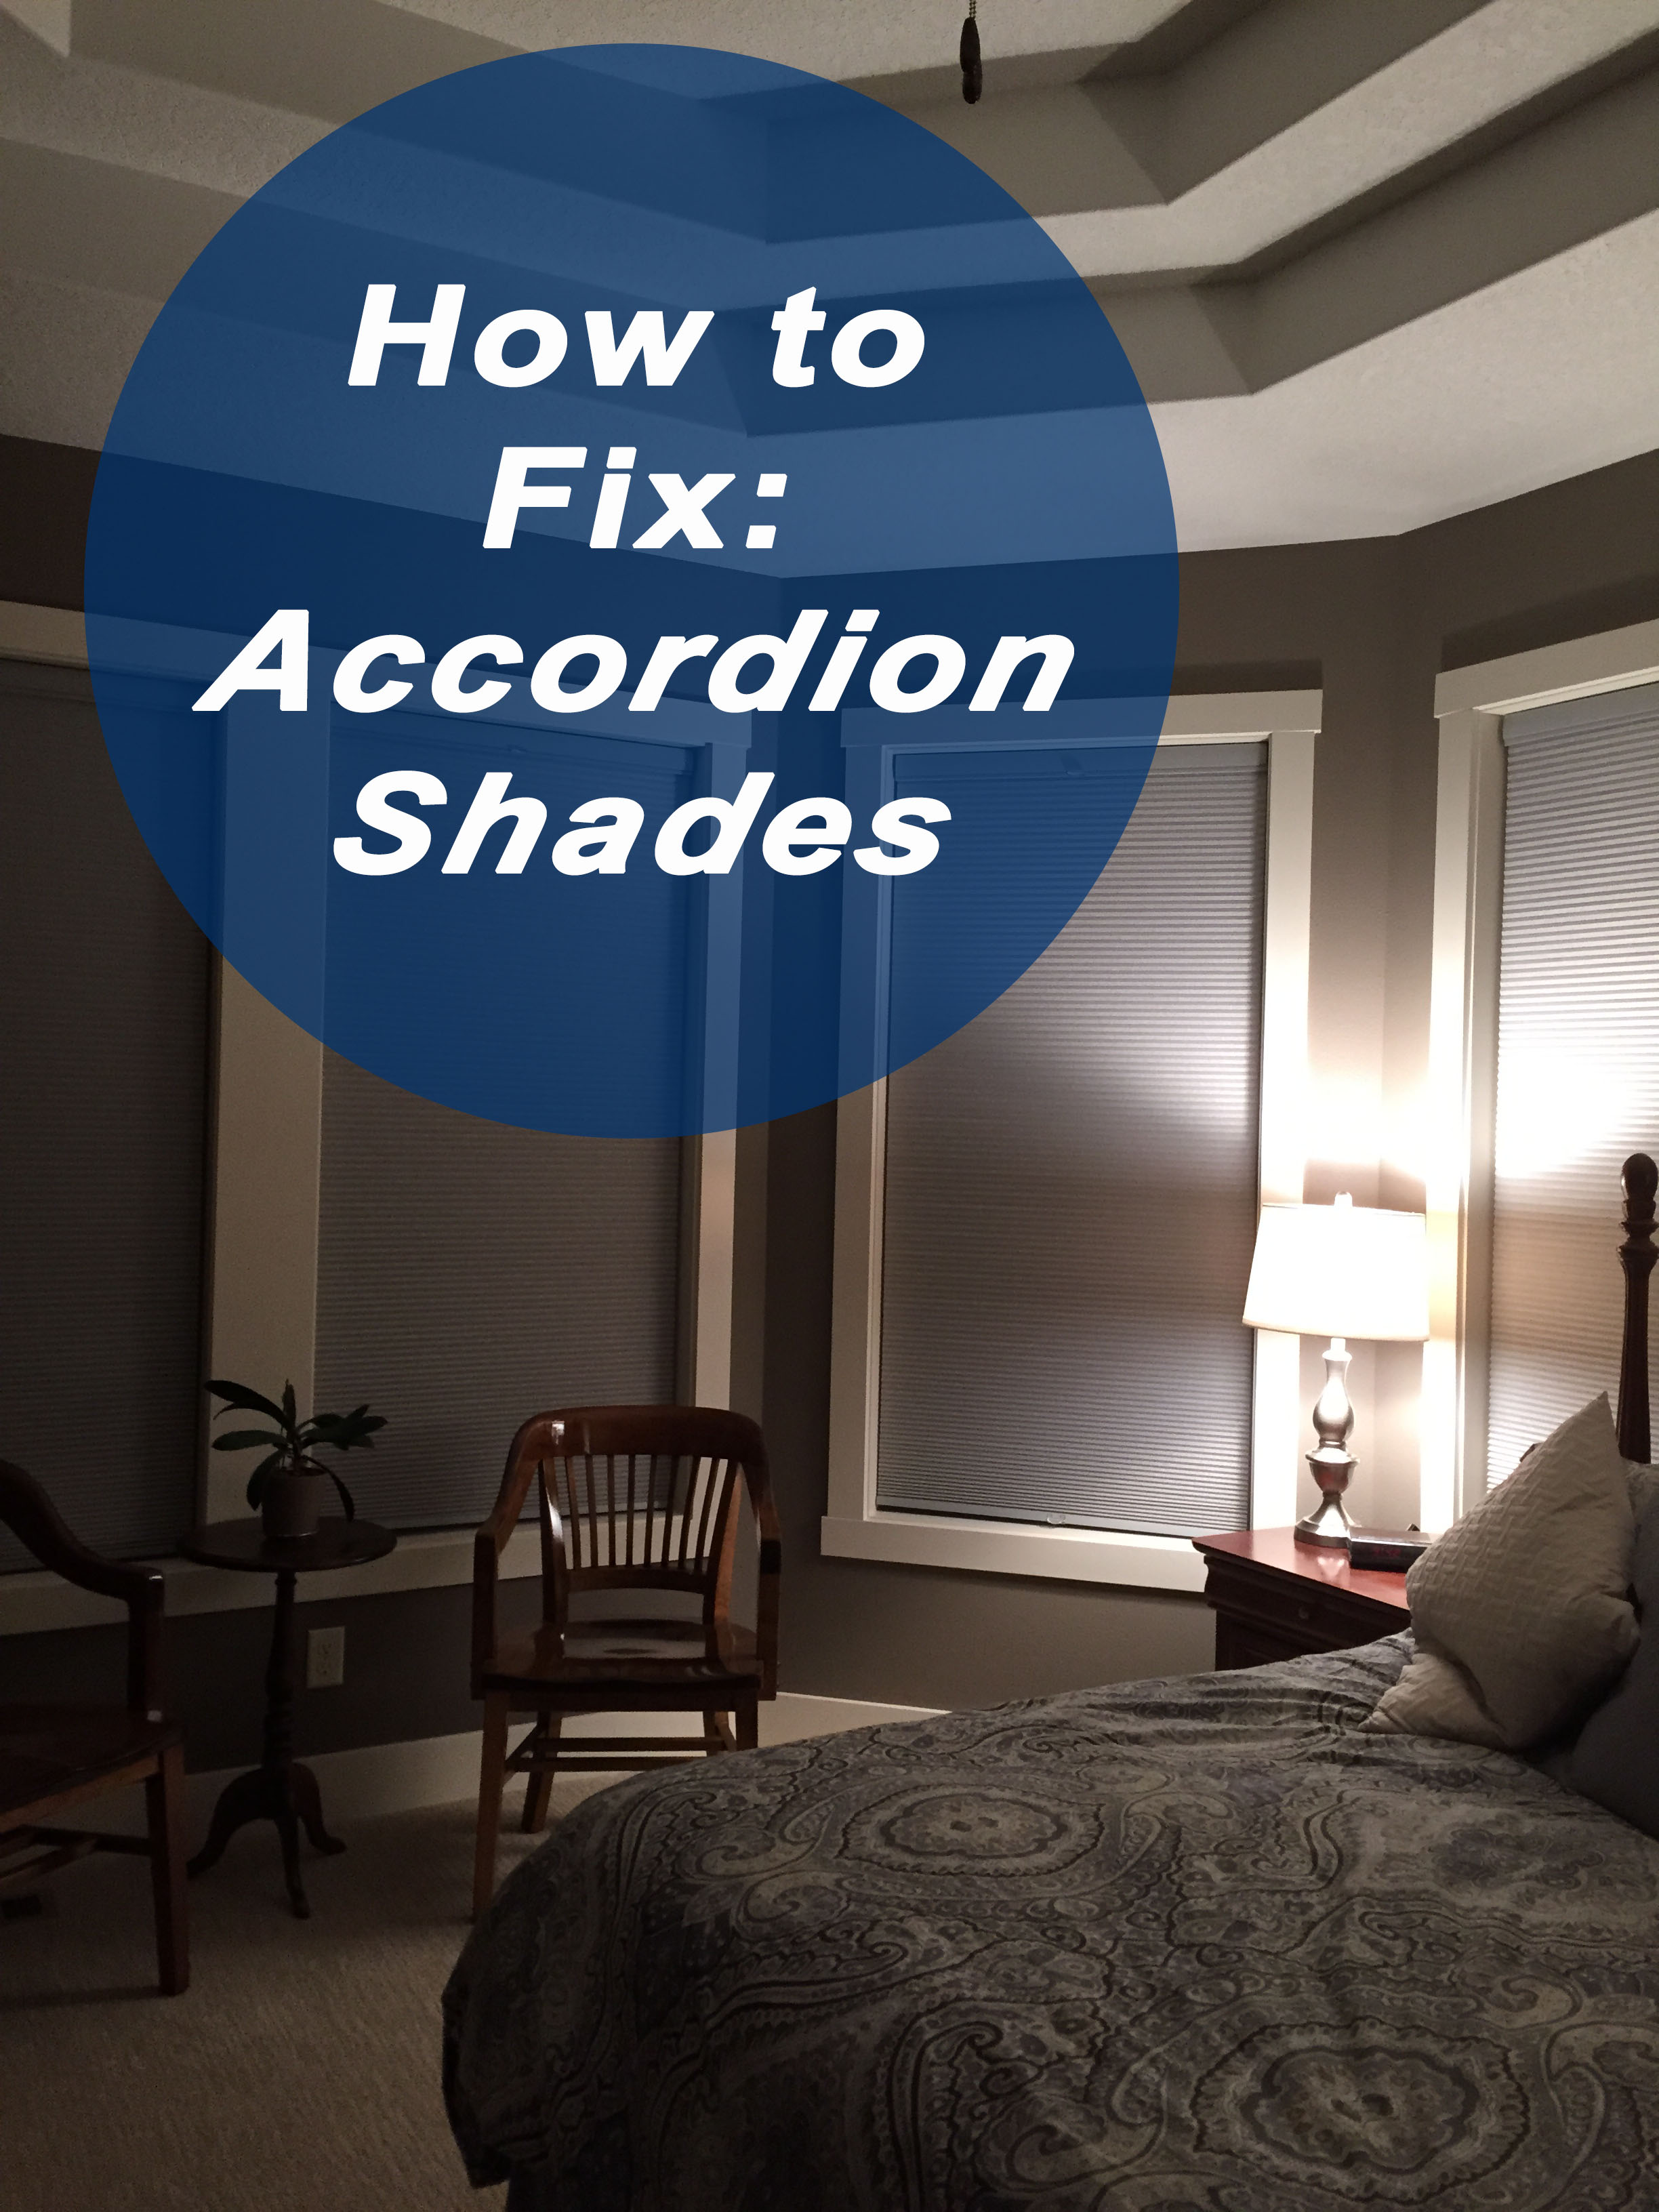 How to Fix Accordion Shades